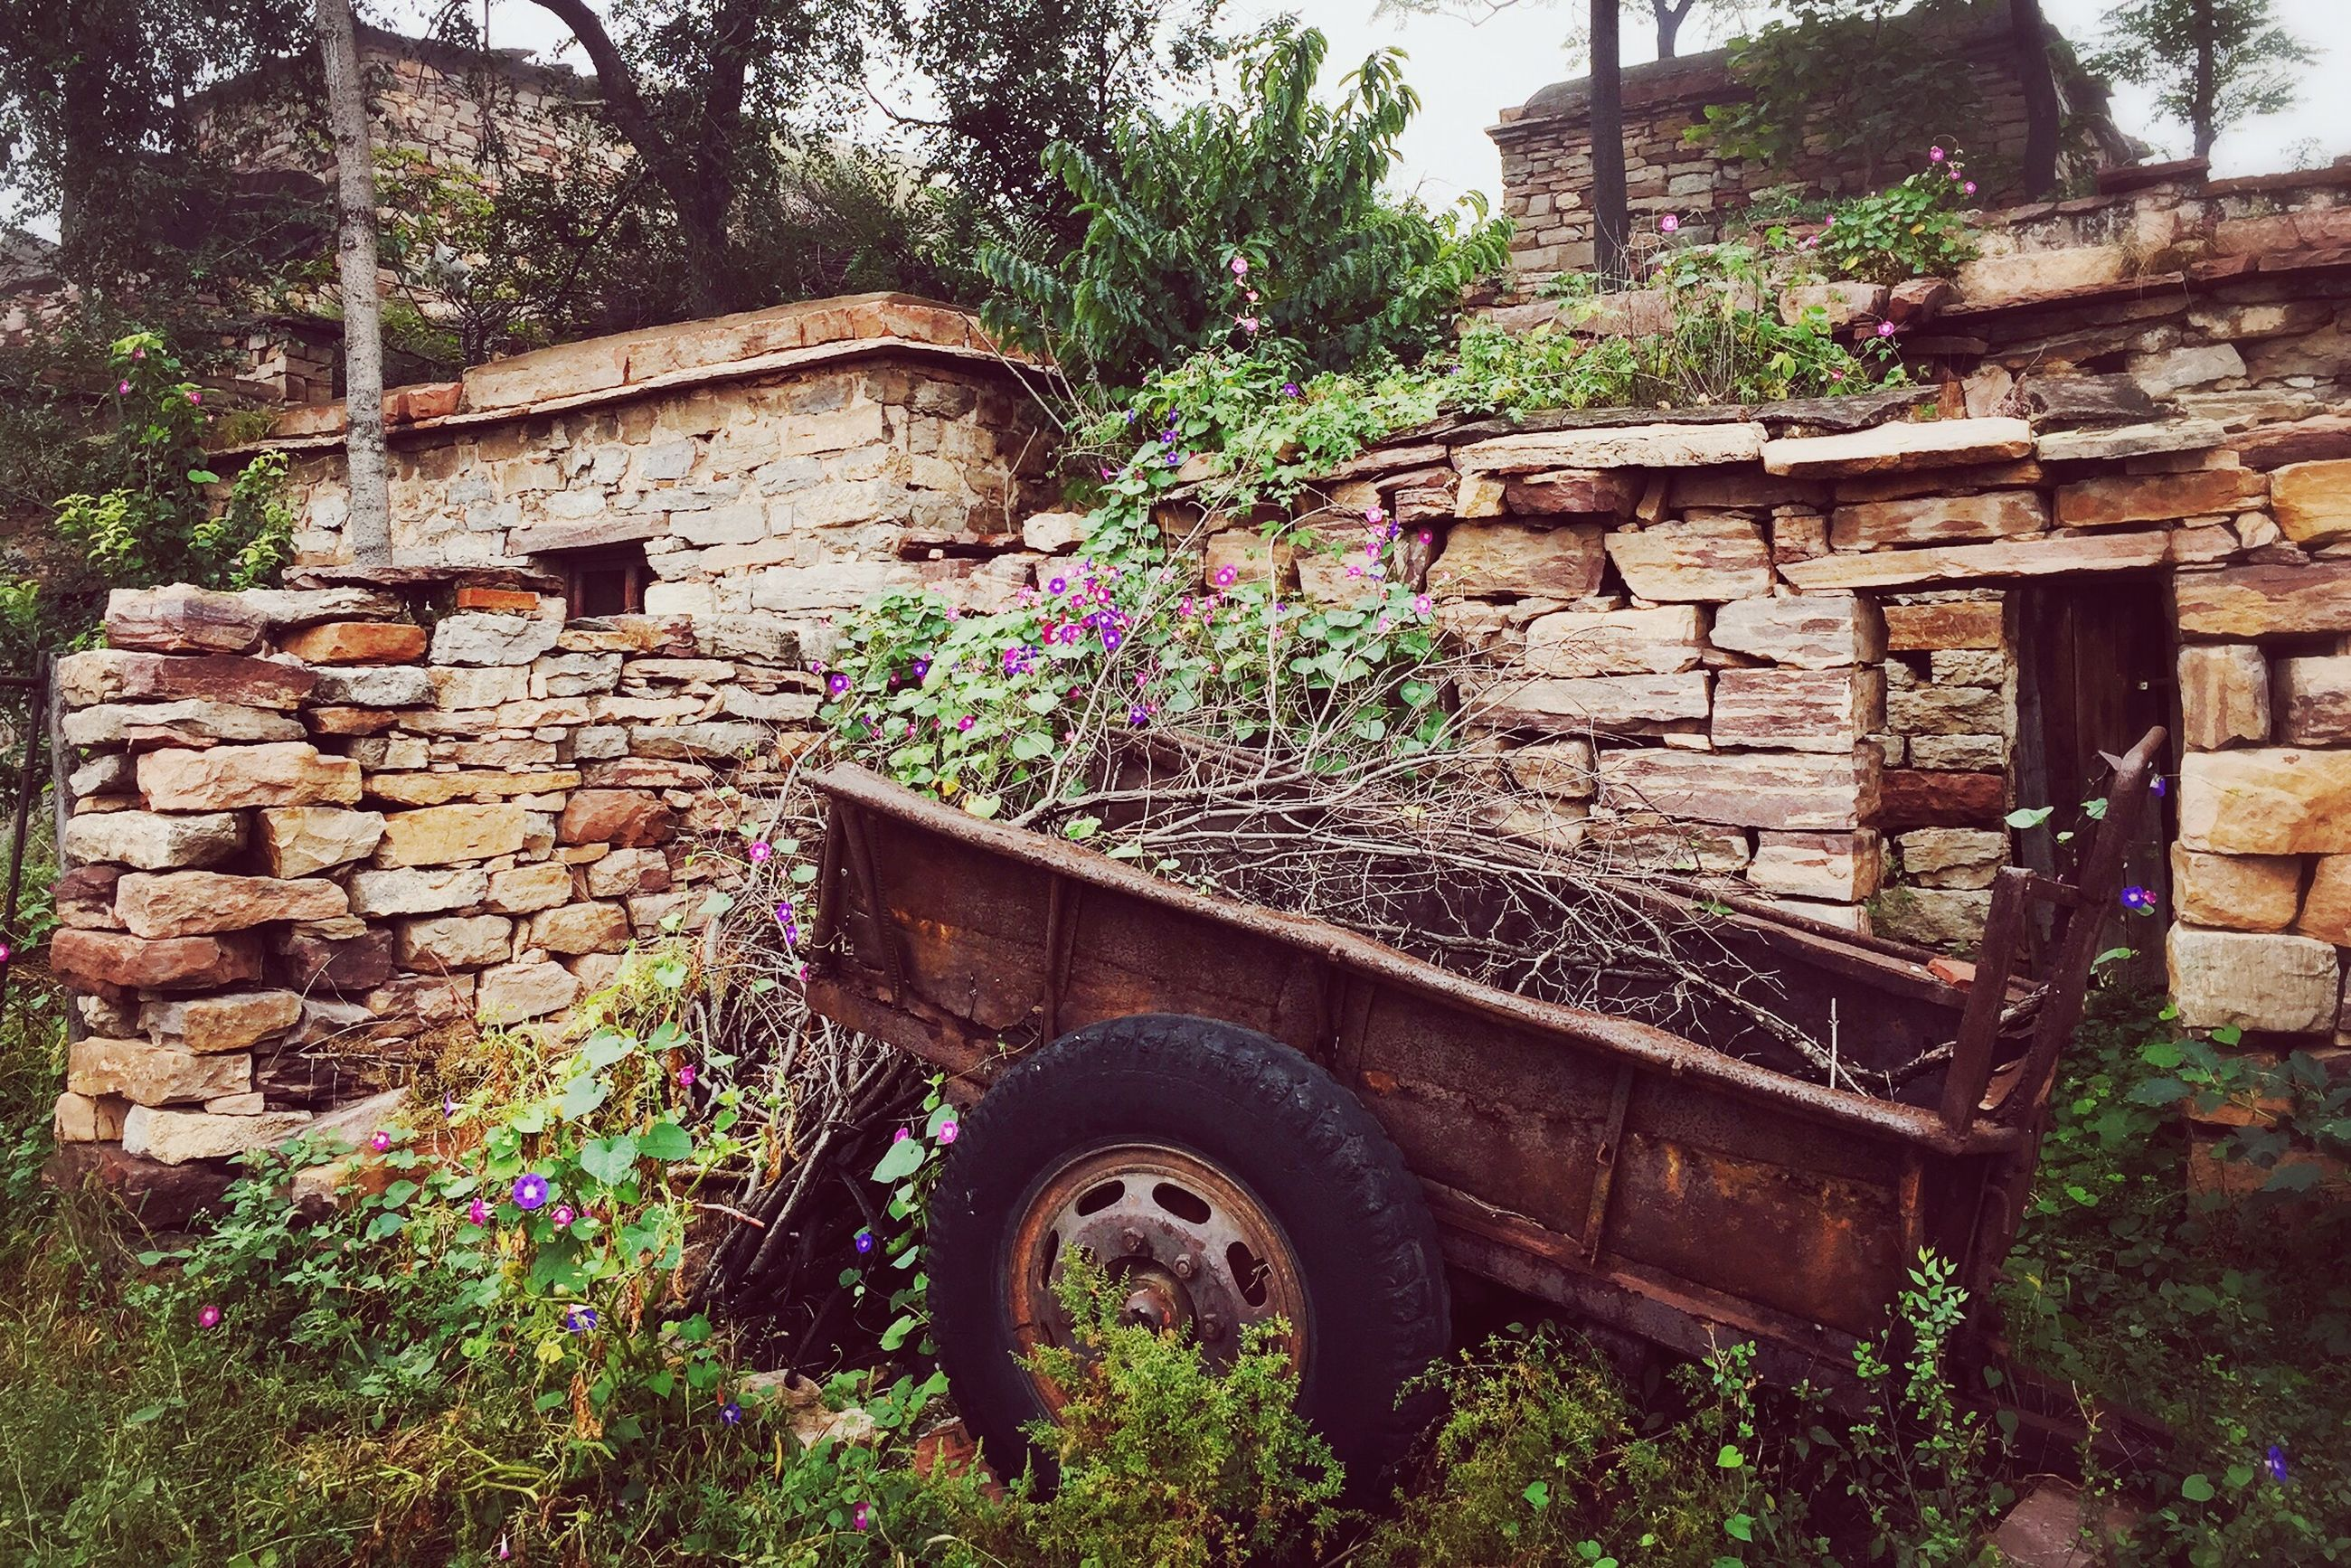 architecture, built structure, building exterior, stone wall, brick wall, old, plant, tree, house, wall - building feature, arch, abandoned, growth, obsolete, day, steps, deterioration, outdoors, wall, building